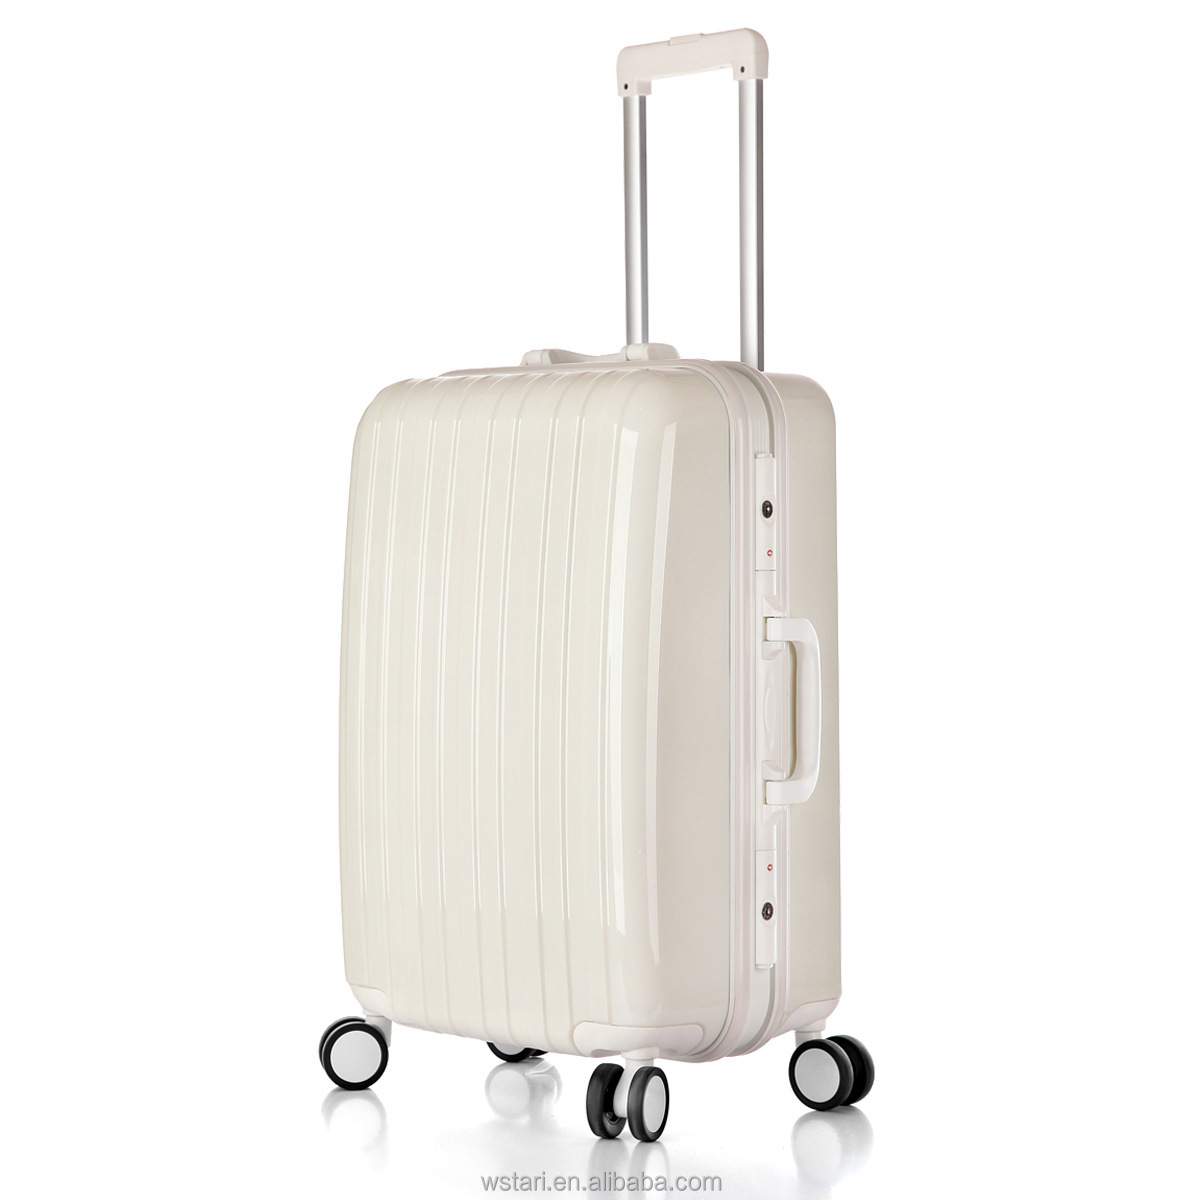 Brand White Universal Wheels Trolley Aluminum Frame Luggage Check Box Travel Bag Pc Wheeled